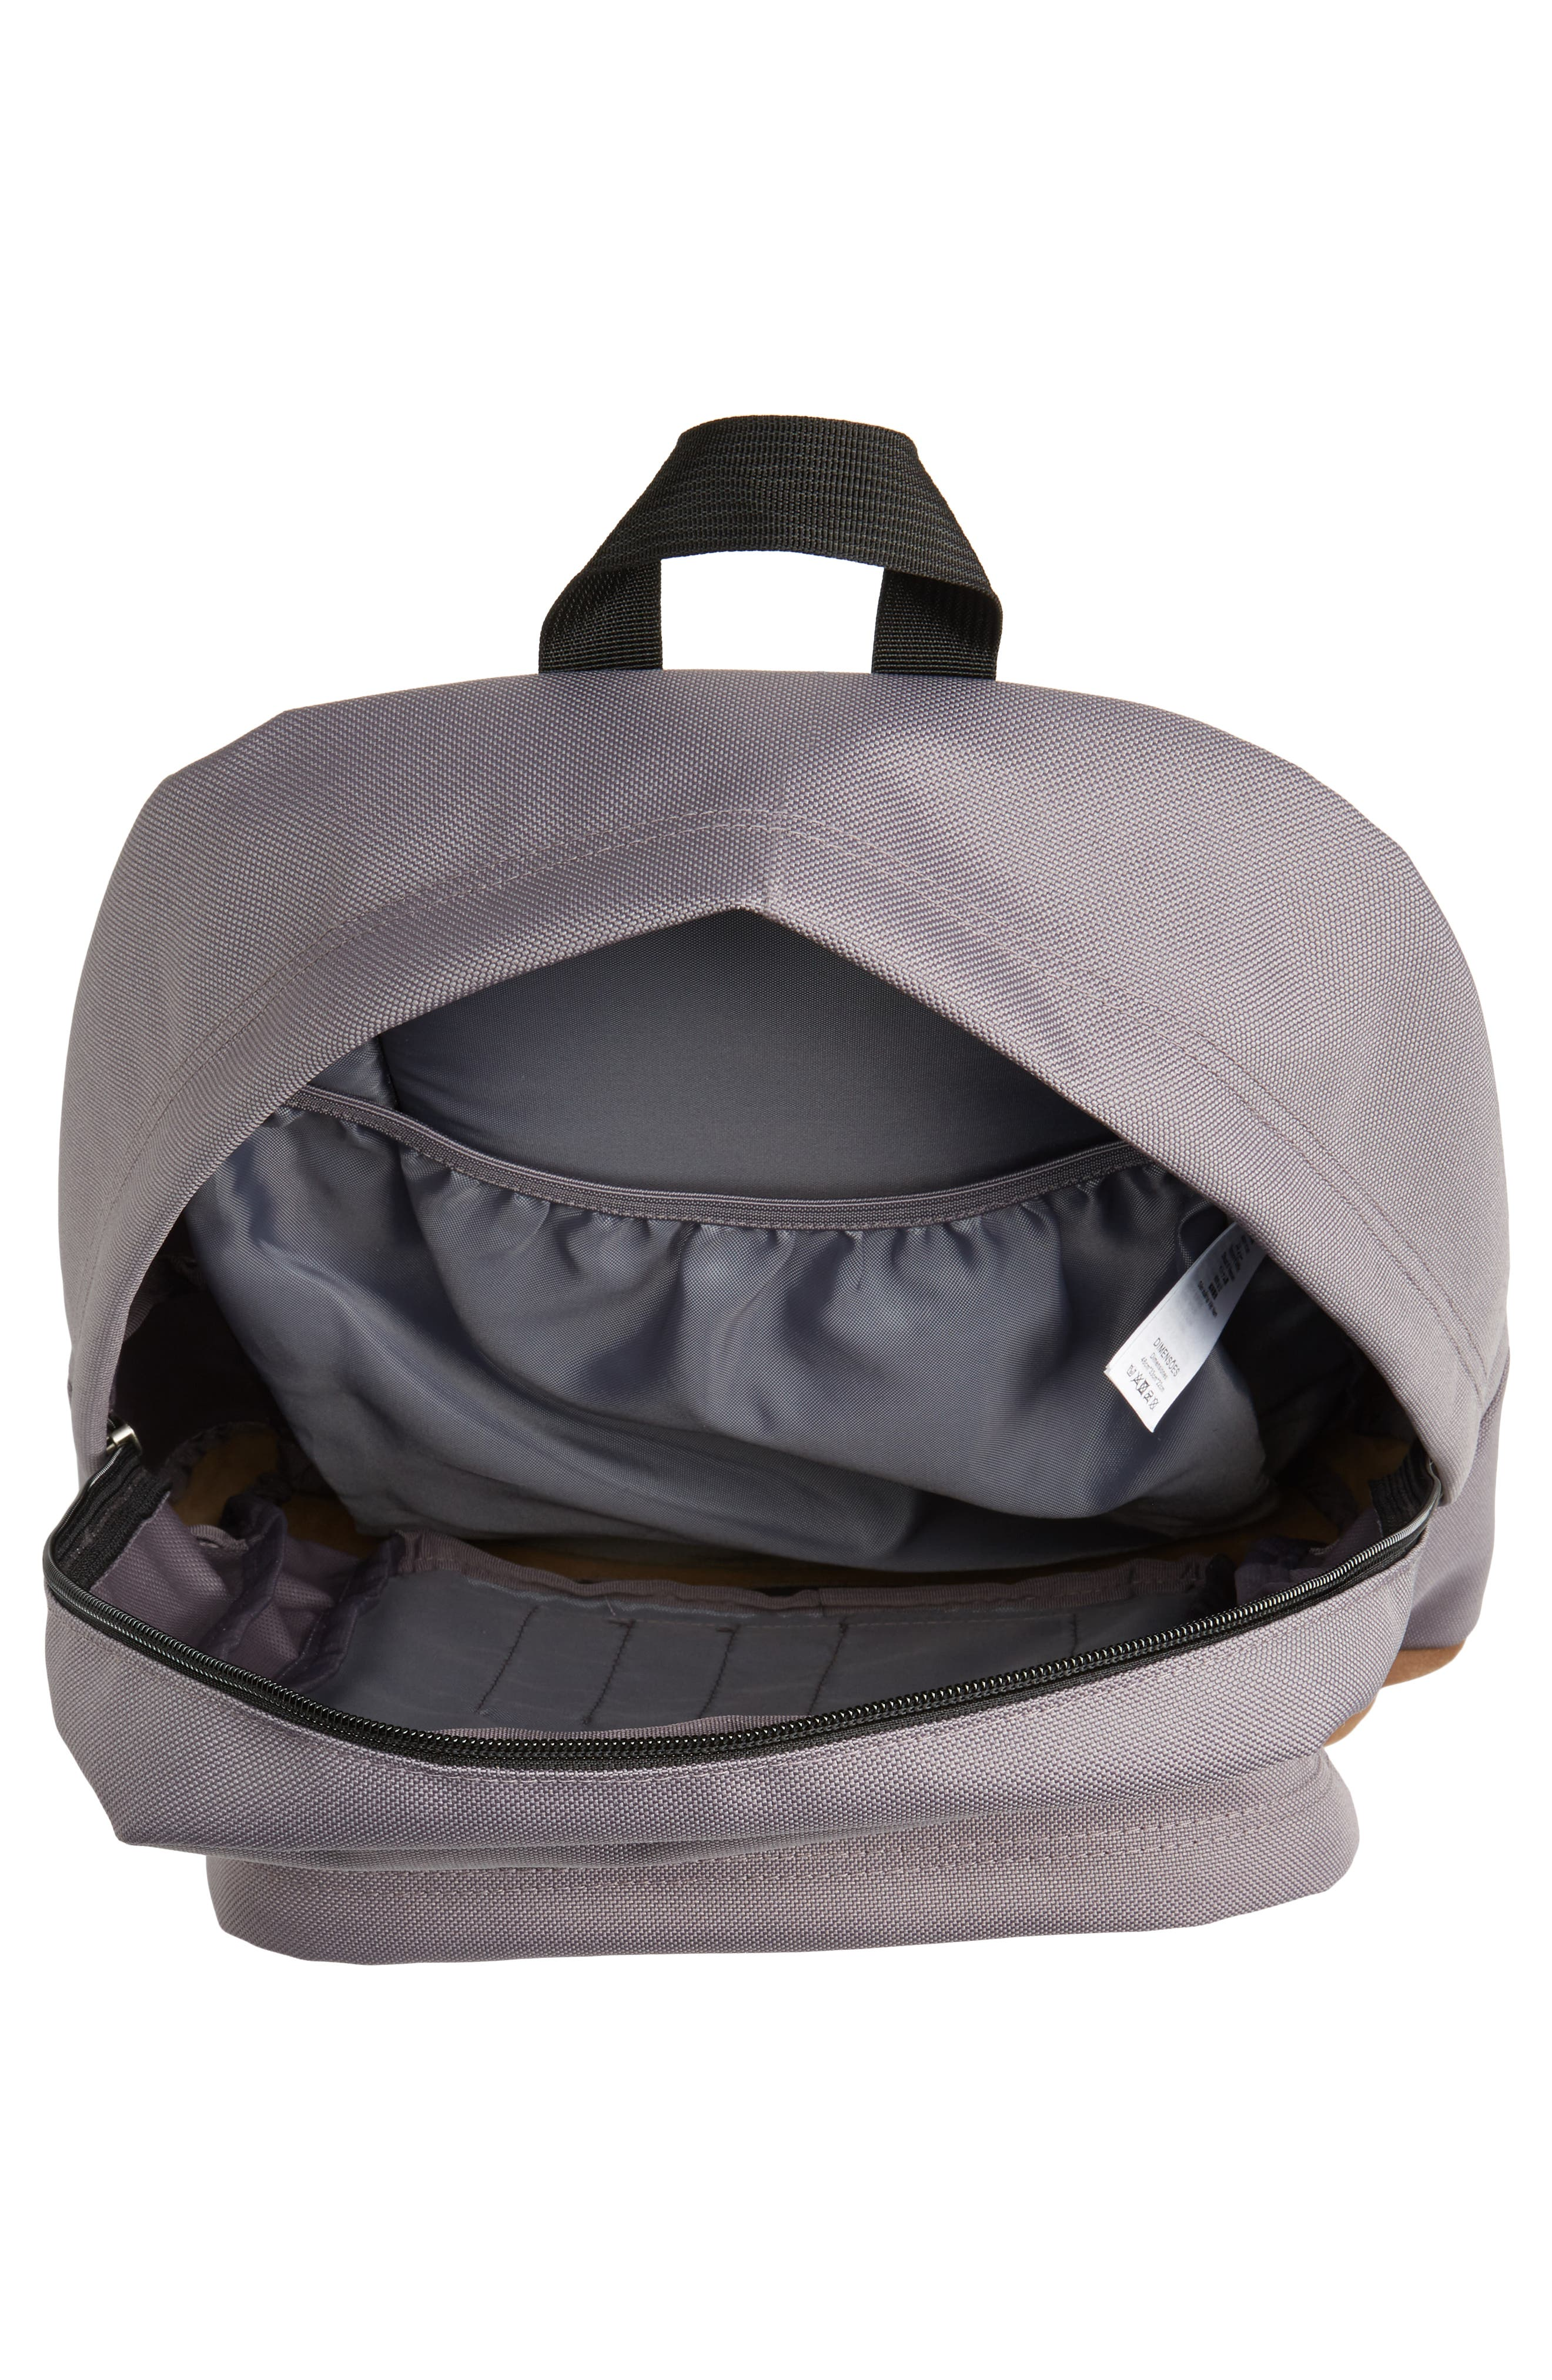 Right Pack Backpack,                             Alternate thumbnail 4, color,                             030